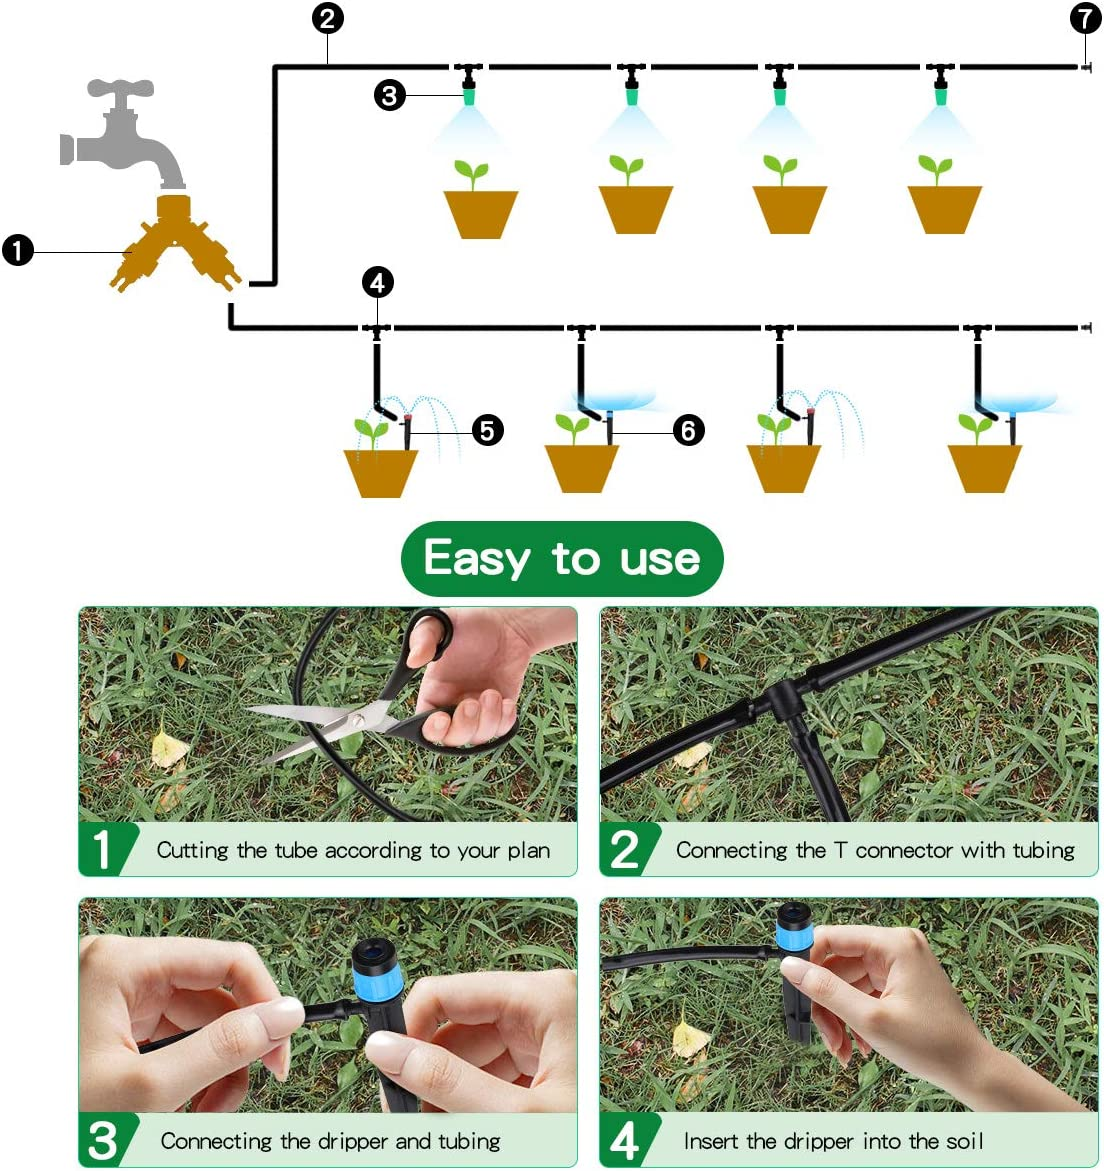 king do way 82Ft/25M Drip Irrigation Kits Garden Watering System with Y Valve, 20 Misting Nozzles 10 Drip Emitters 10 Dripper DIY Mist Cooling Irrigation System for Greenhouse, Patio, Lawn : Garden & Outdoor